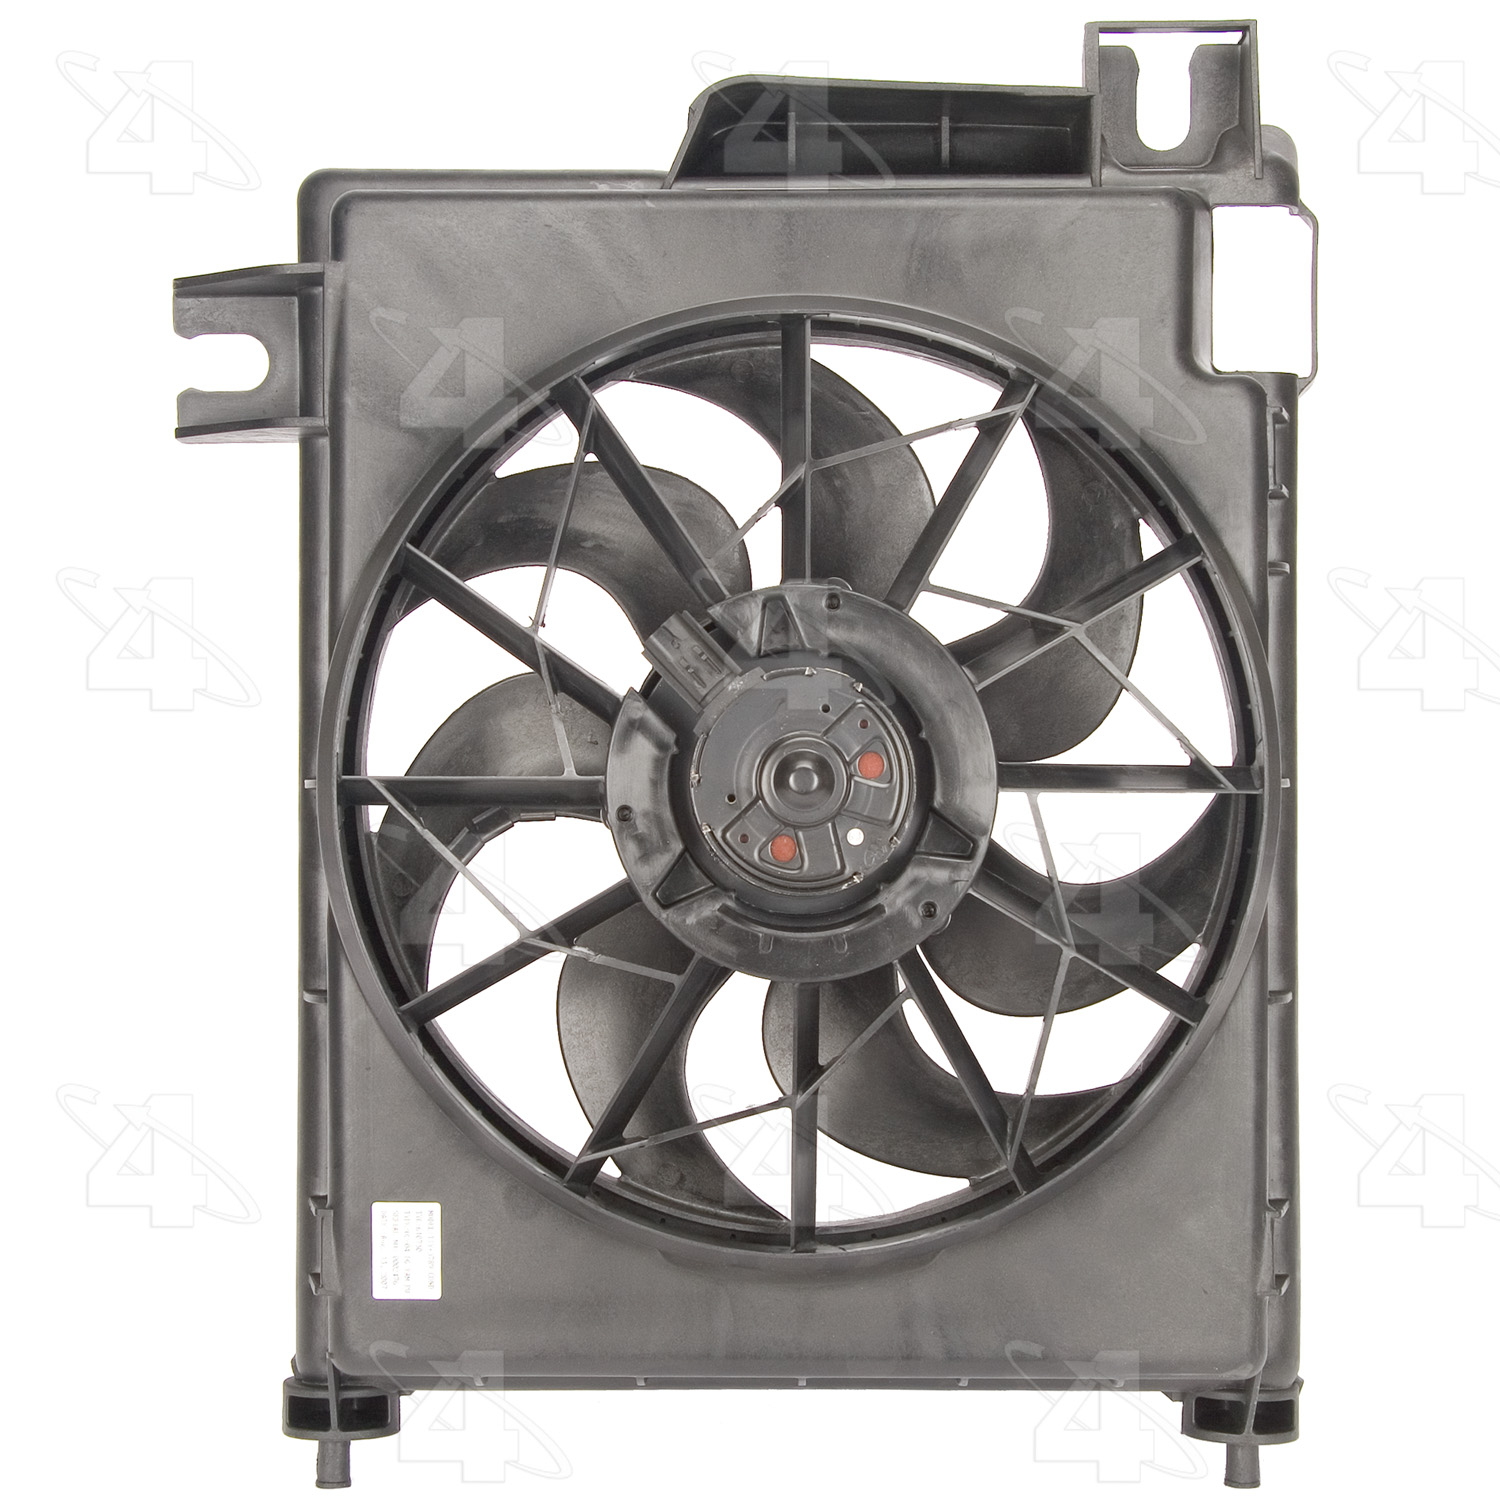 Four Seasons 75565 A/C Condenser Fan Assembly Fits 2004-2006 Dodge Ram 1500 75565